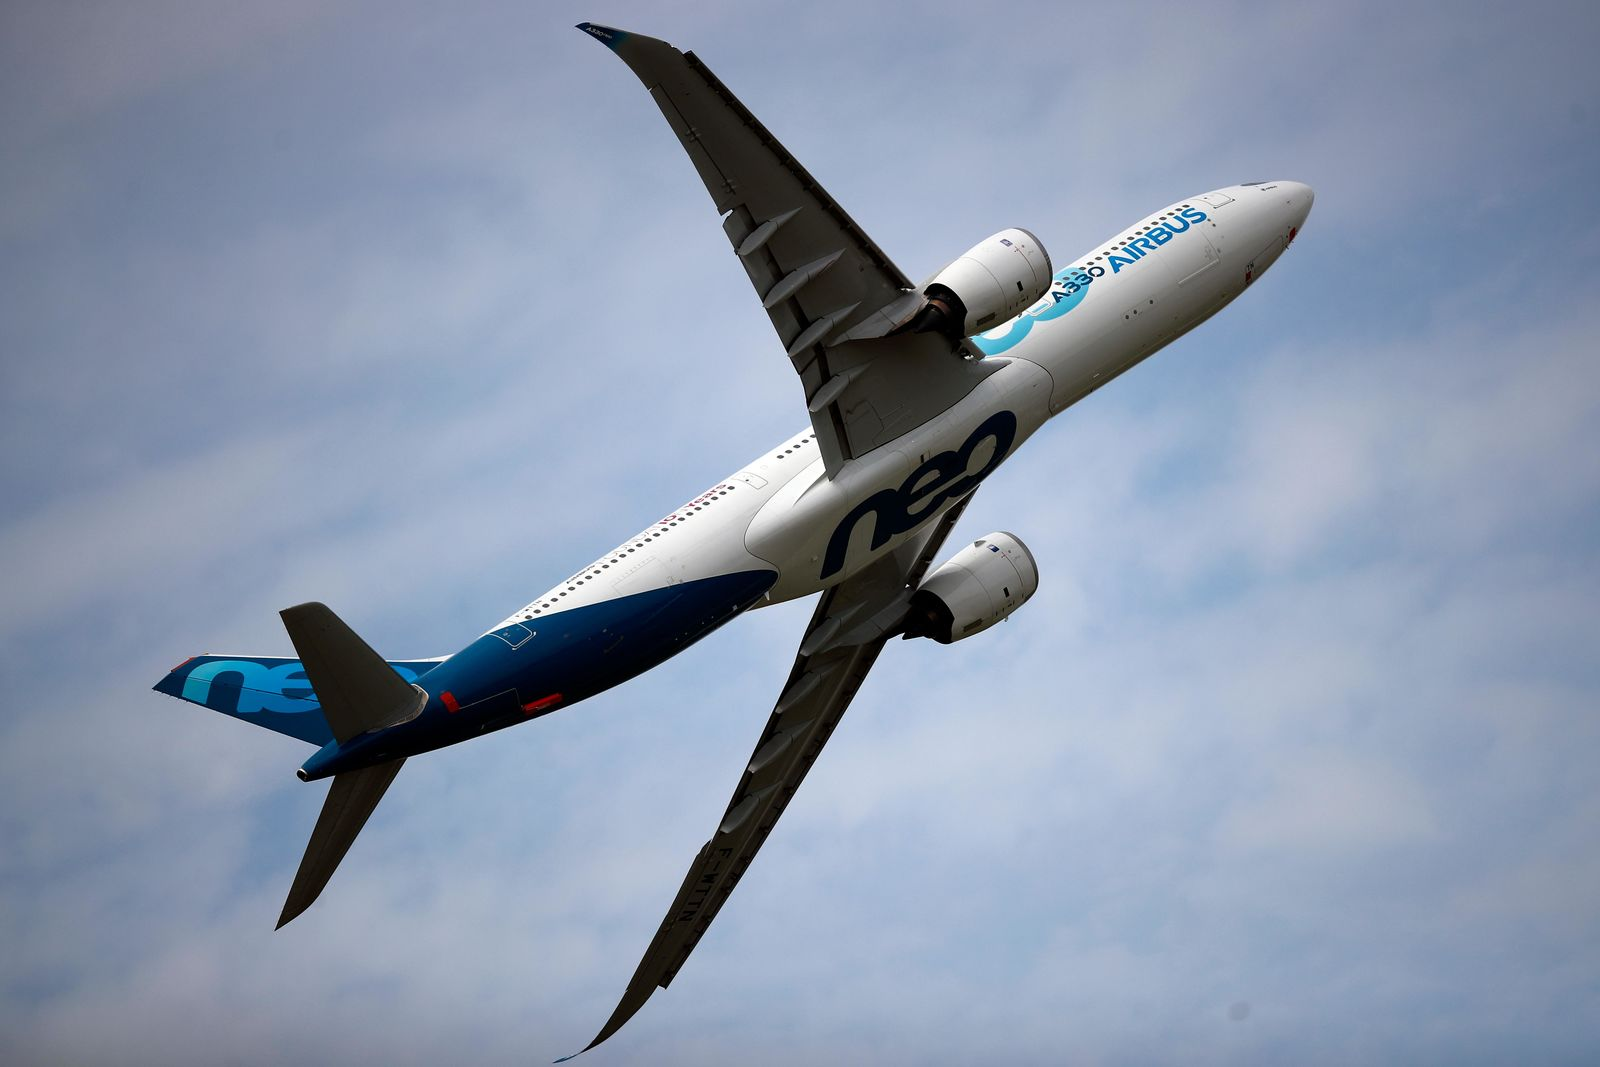 An Airbus A330 performs a demonstration flight at Paris Air Show, in Le Bourget, north east of Paris, France, Tuesday, June 18, 2019. (AP Photo/ Francois Mori)